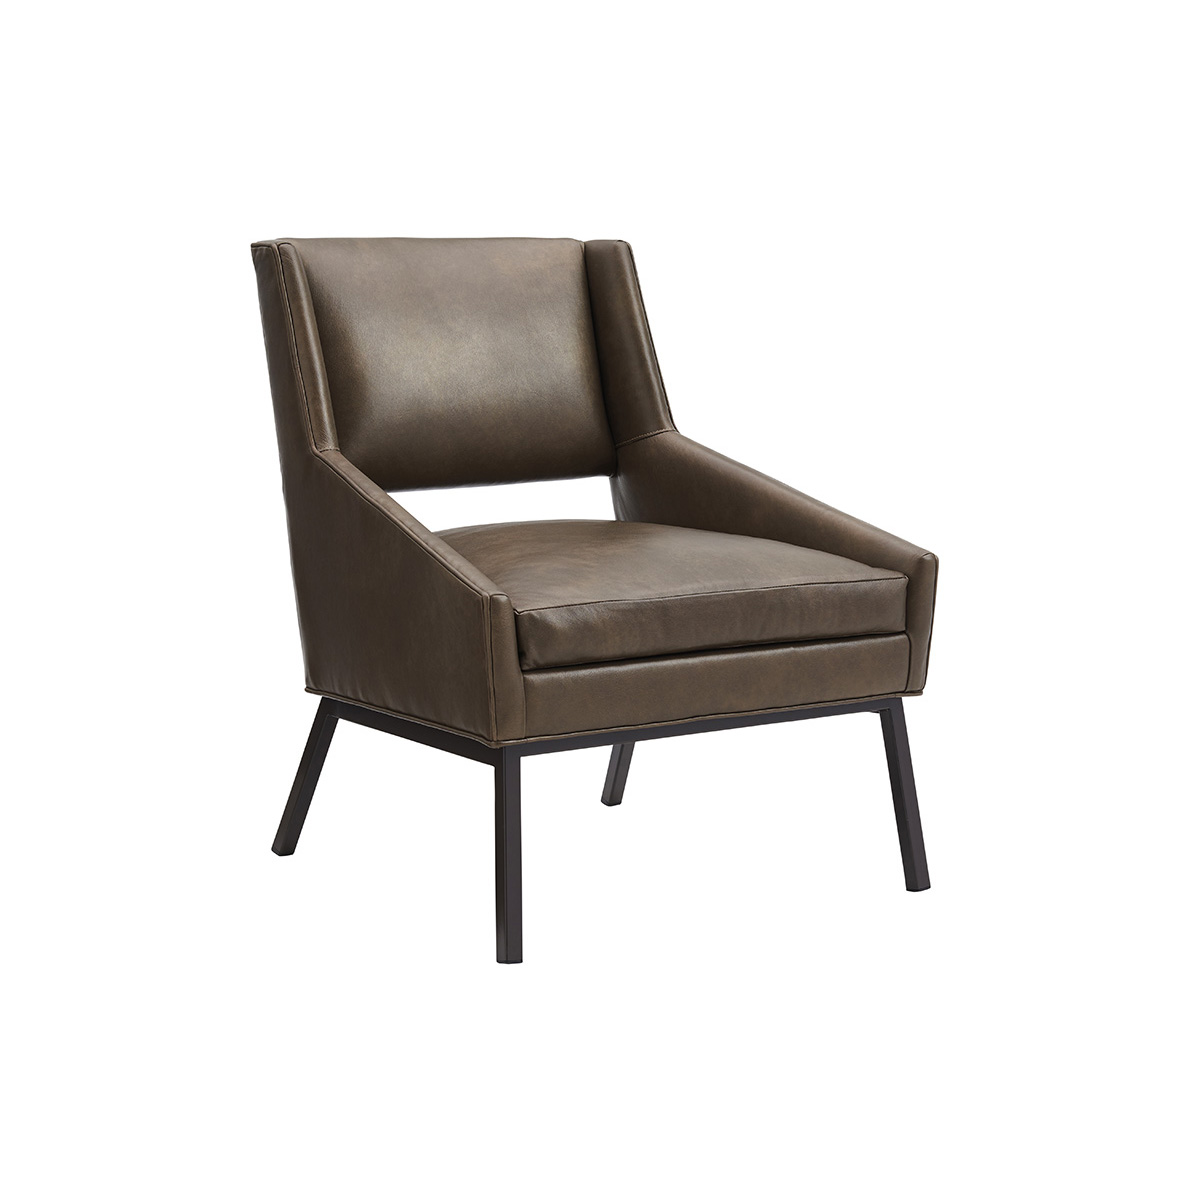 AMANI LEATHER CHAIR WITH CHARCOAL BASE.jpg